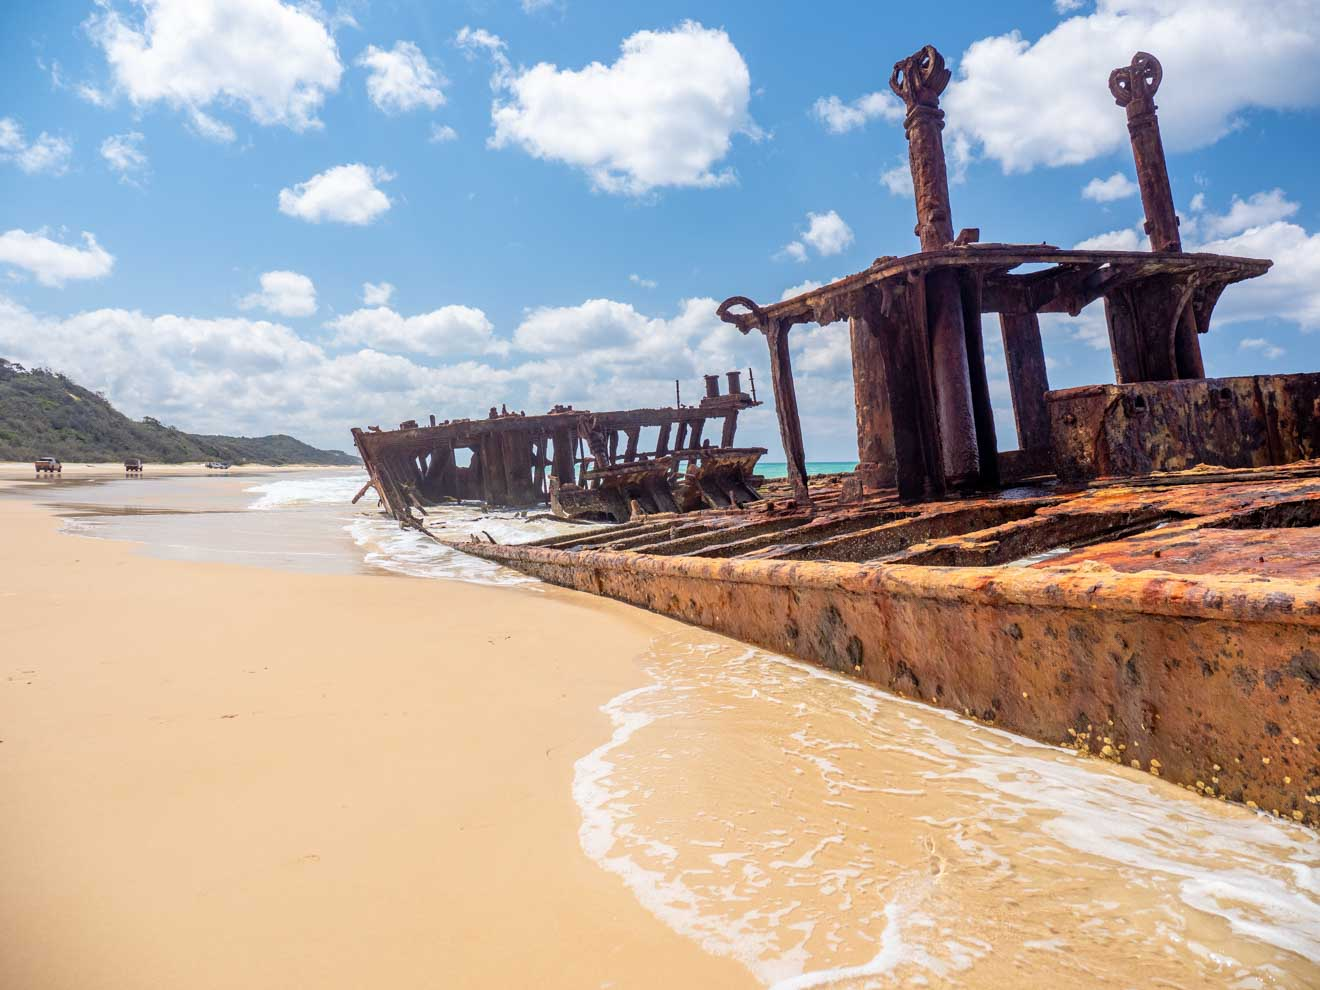 ss maheno shipwreck things to do in fraser island